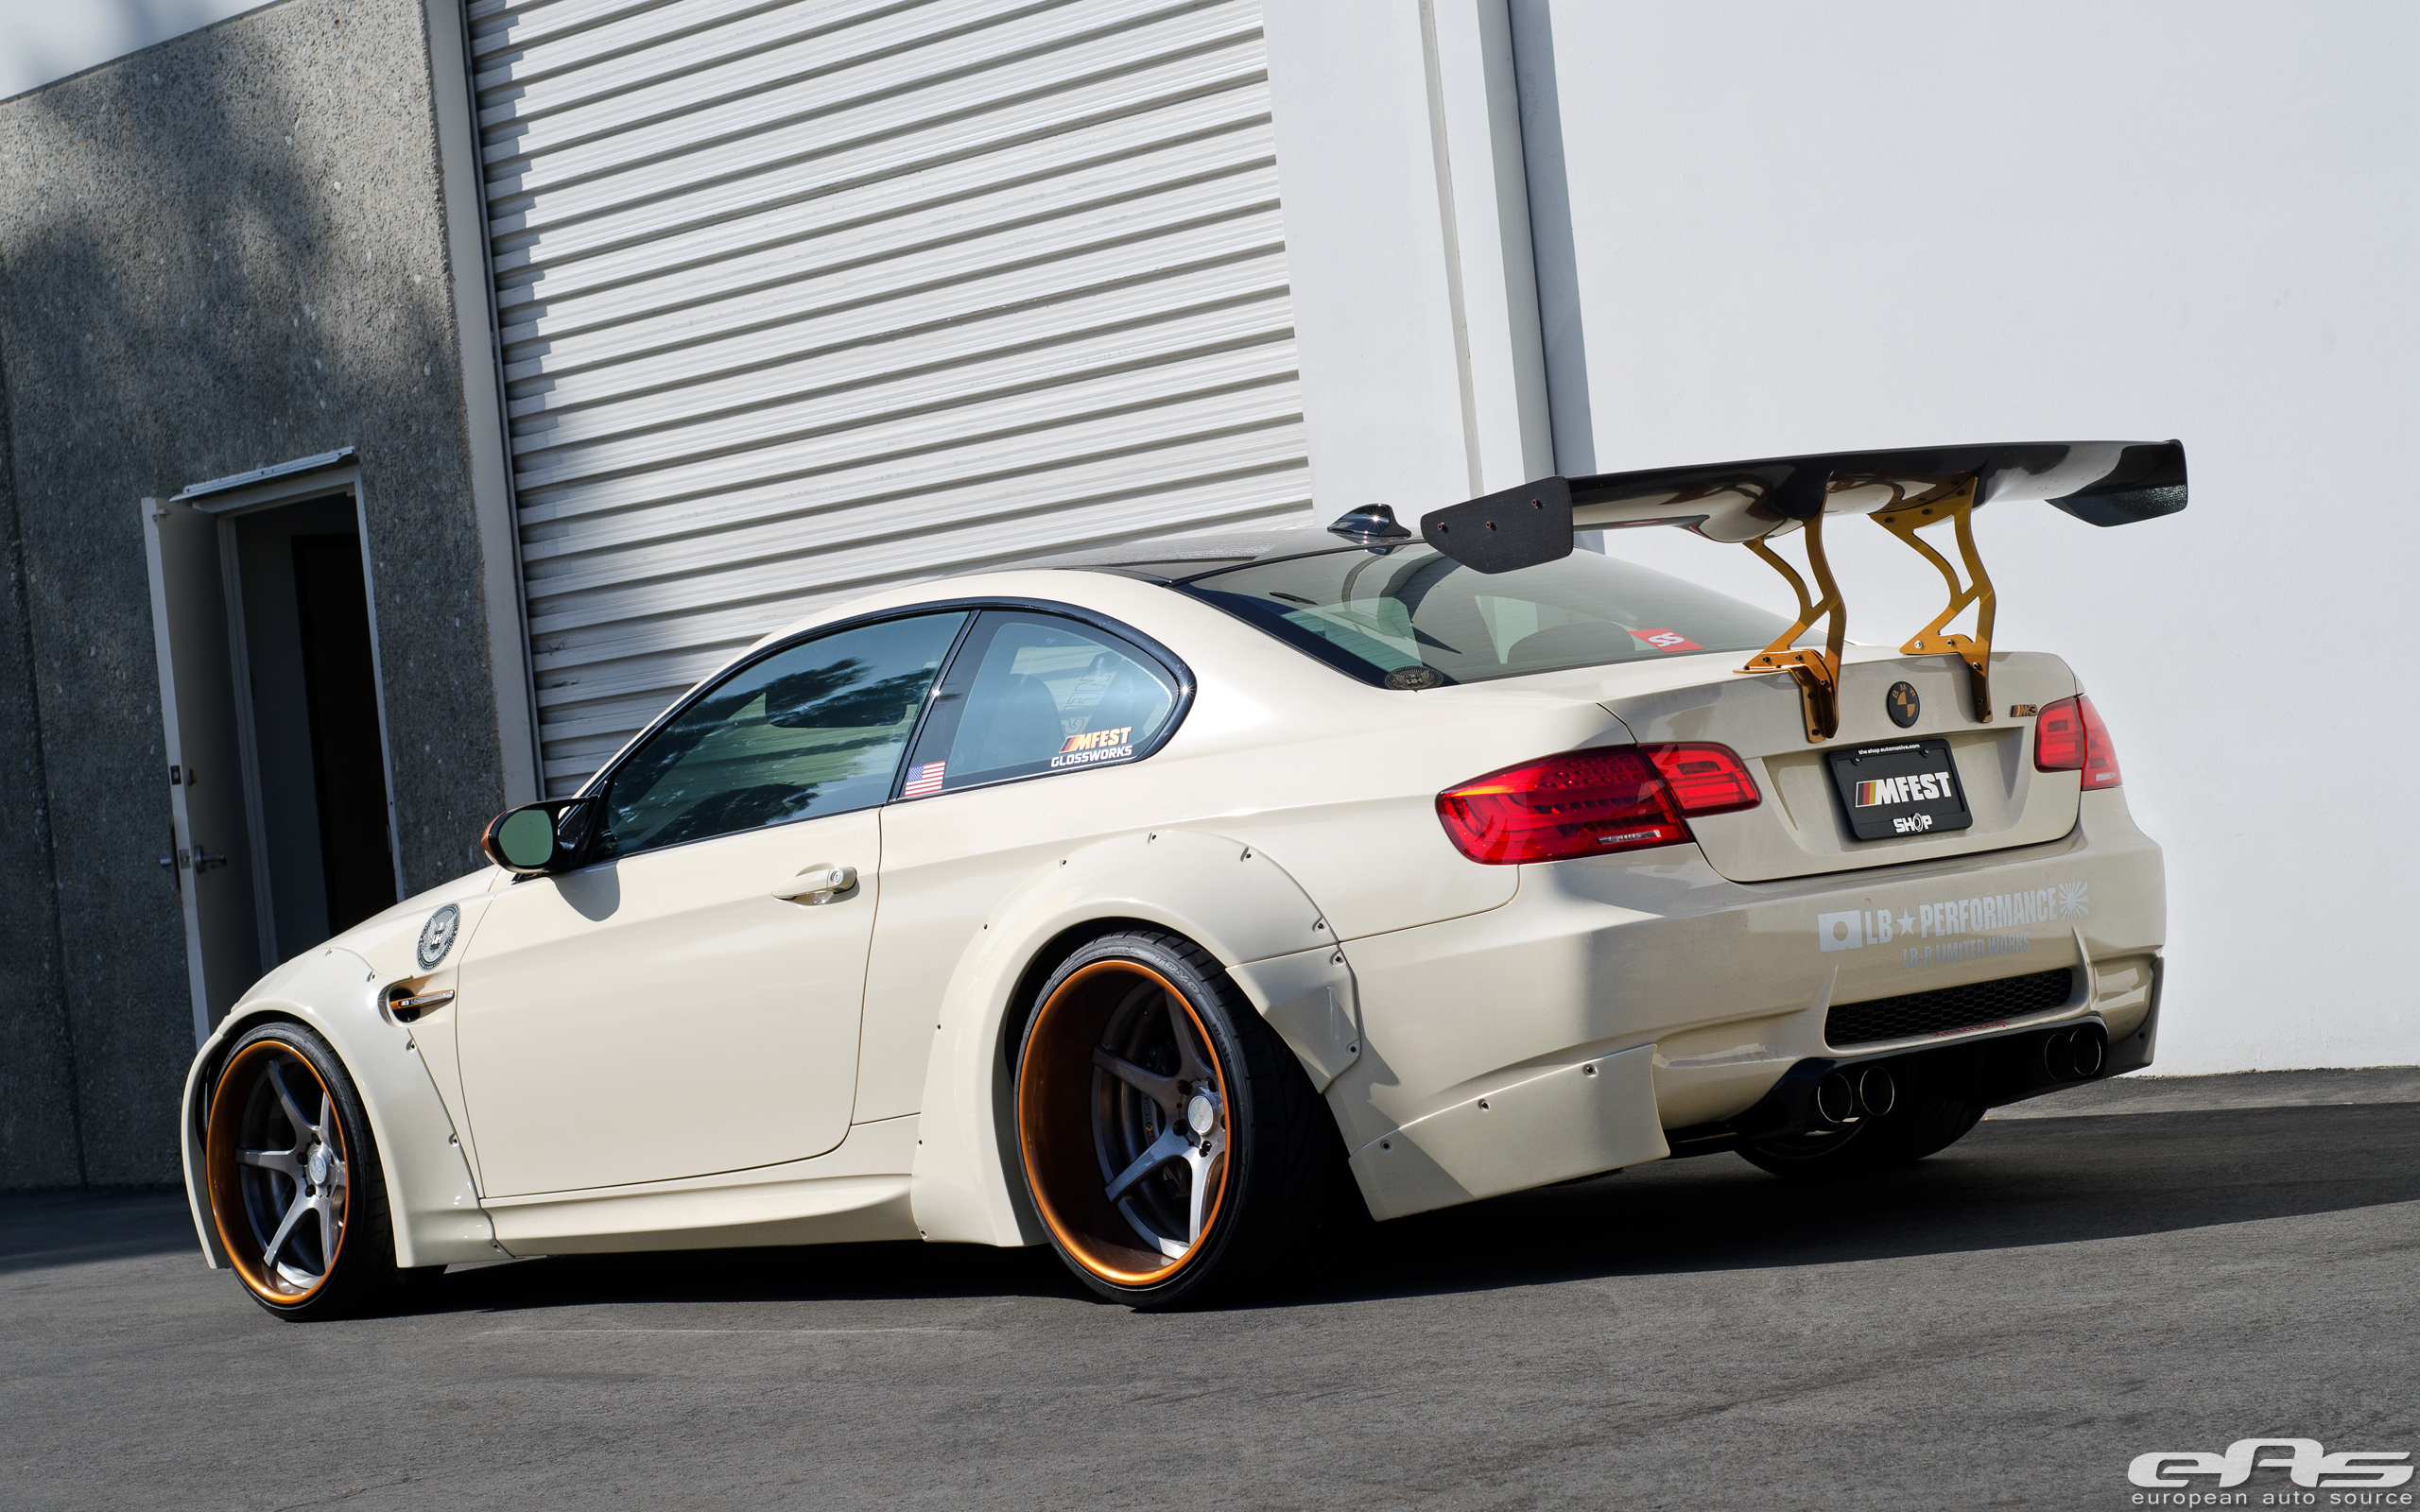 Mfest Liberty Walk Vf620 E92 M3